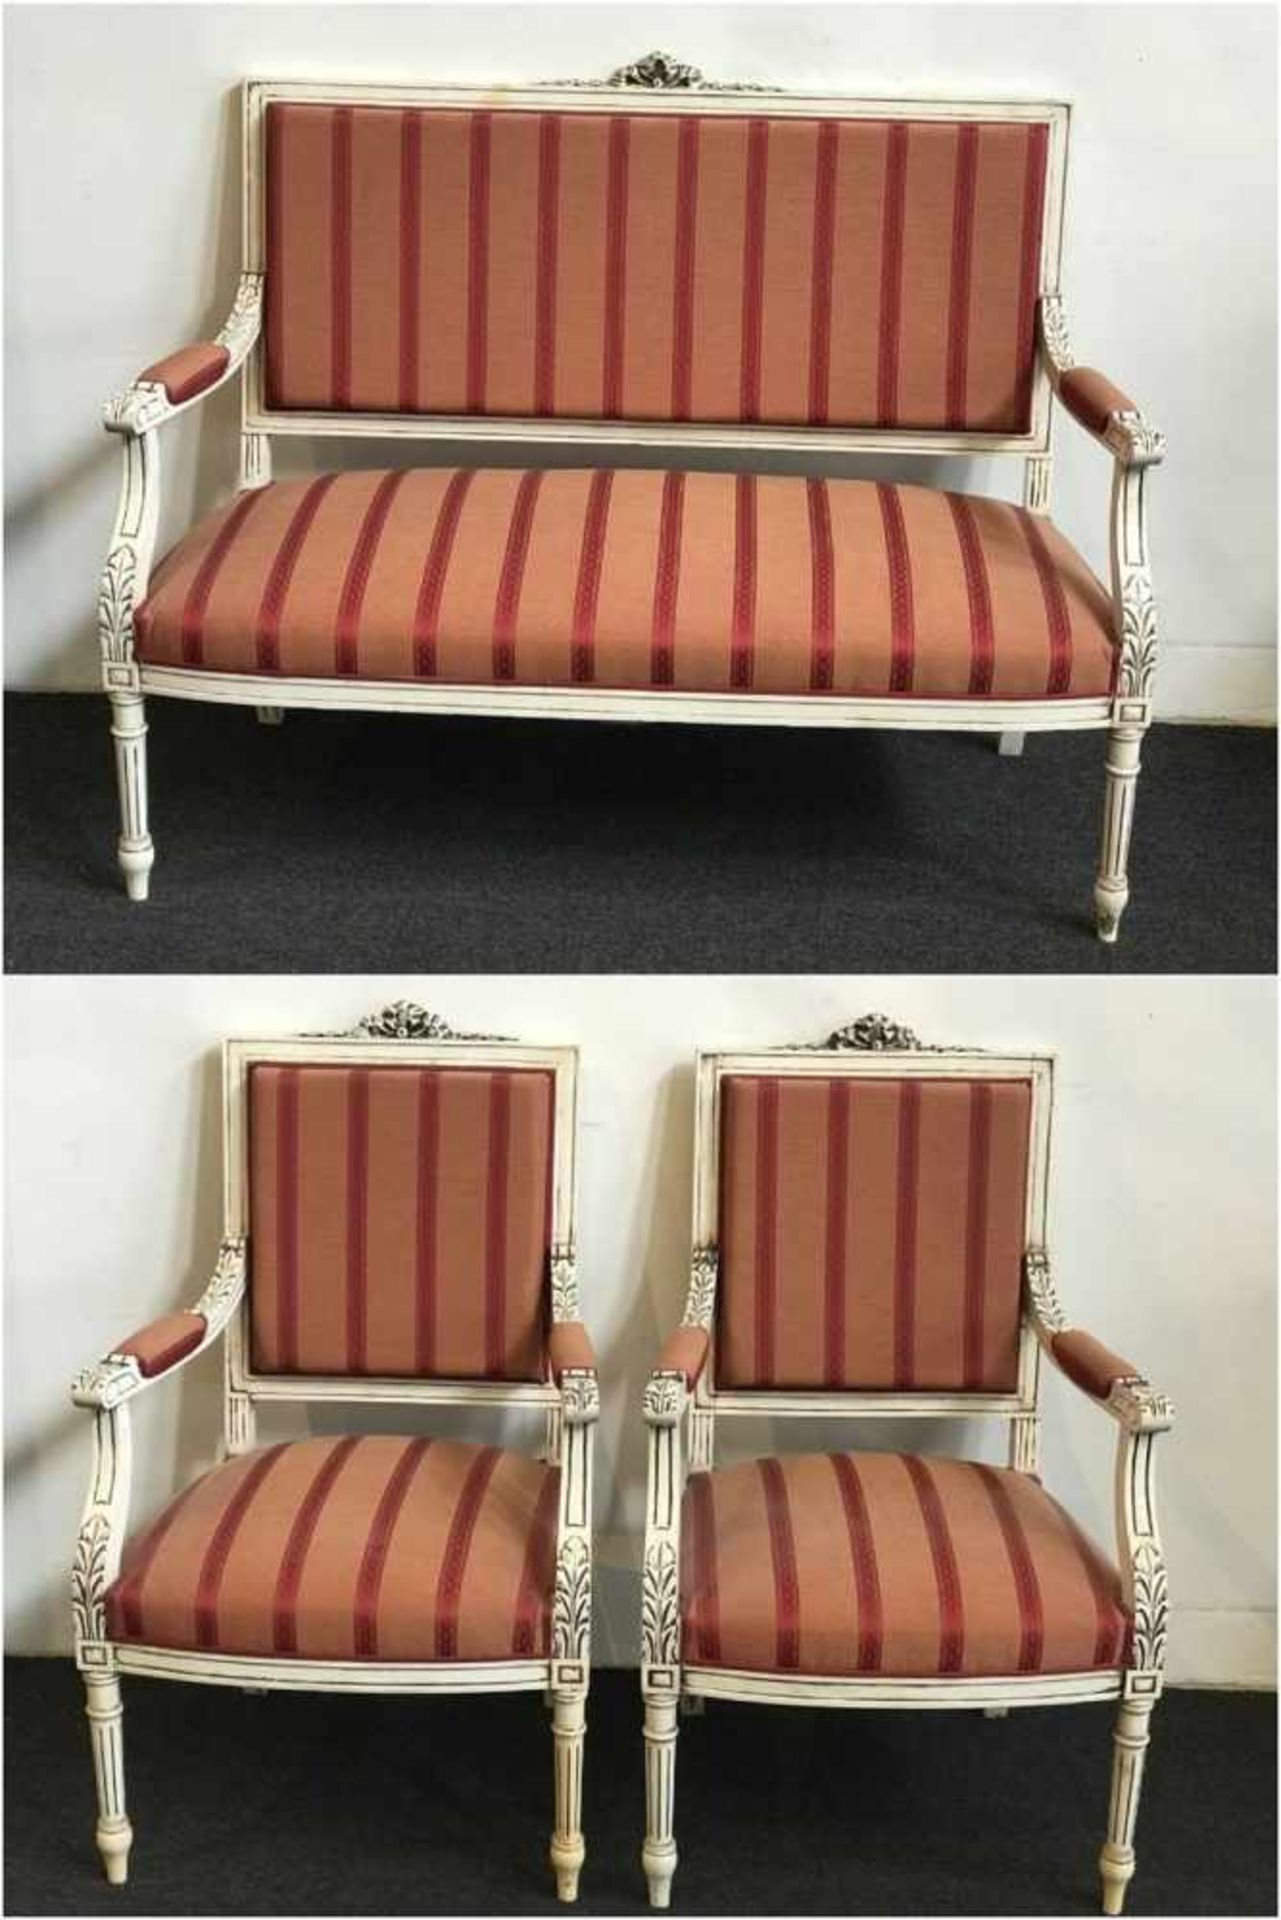 Louis XV salon two-seater and 2 single-seater